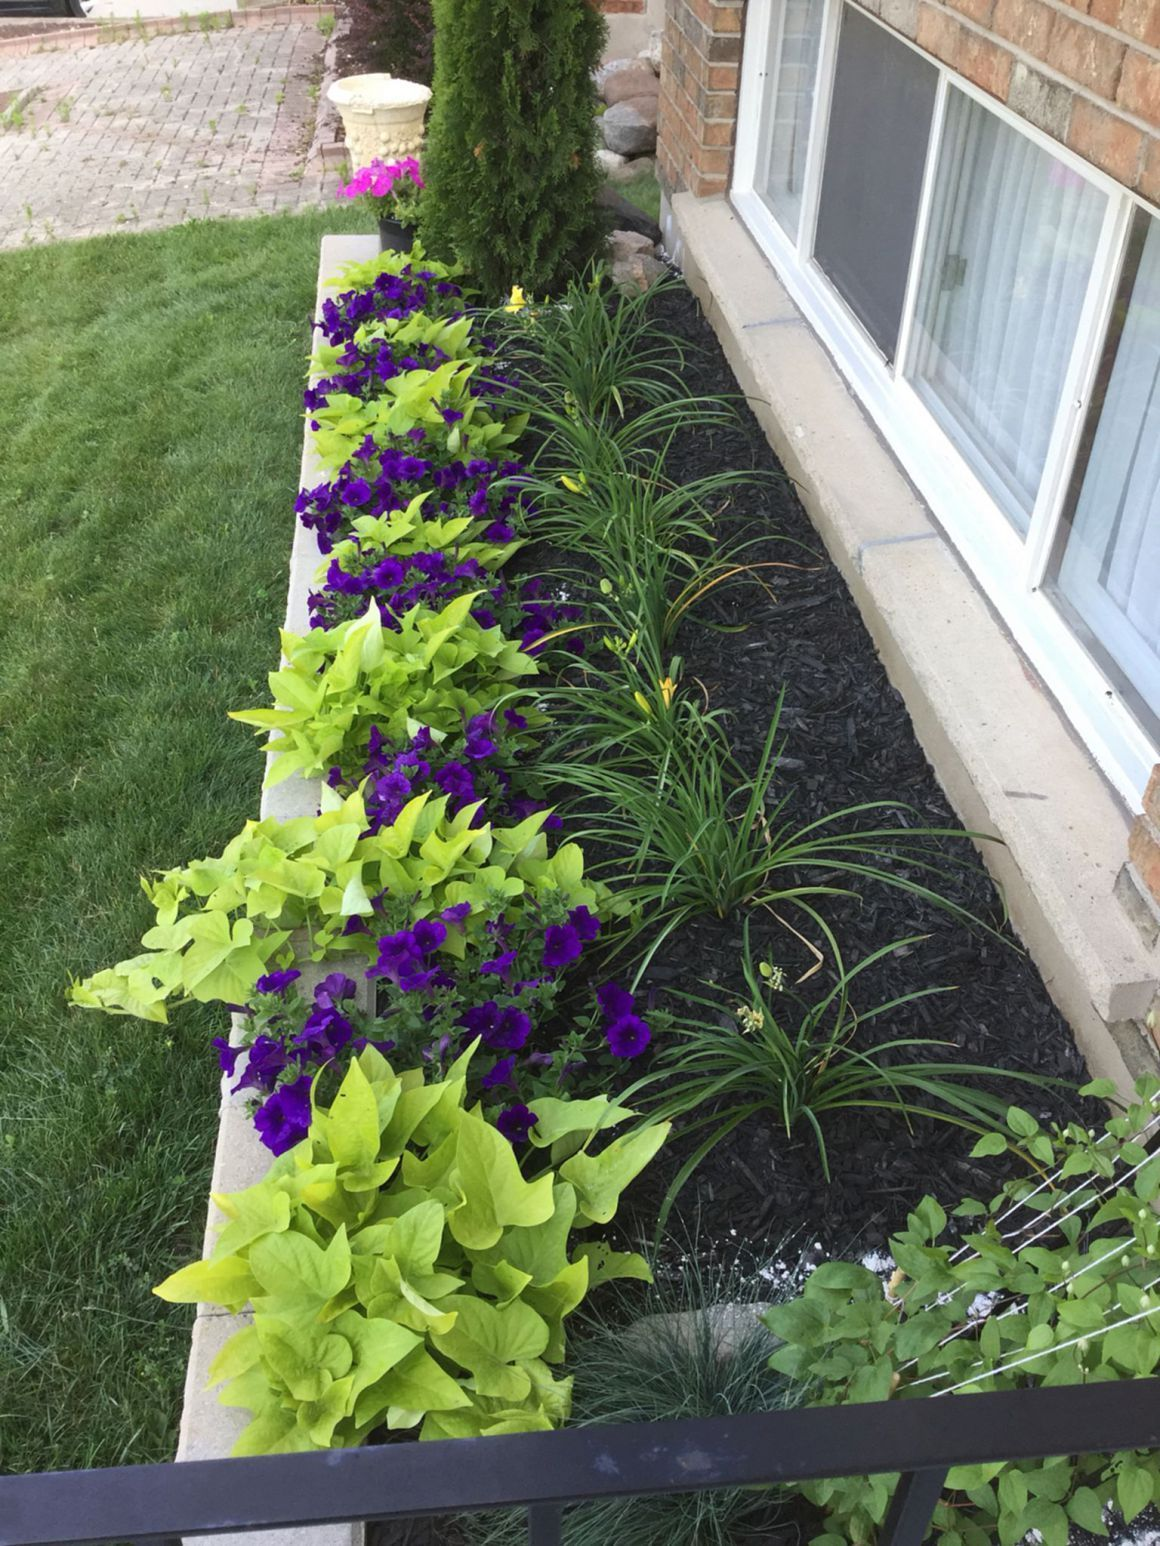 Incredible Flower Beds Ideas To Make Your Home Front Yard Awesome